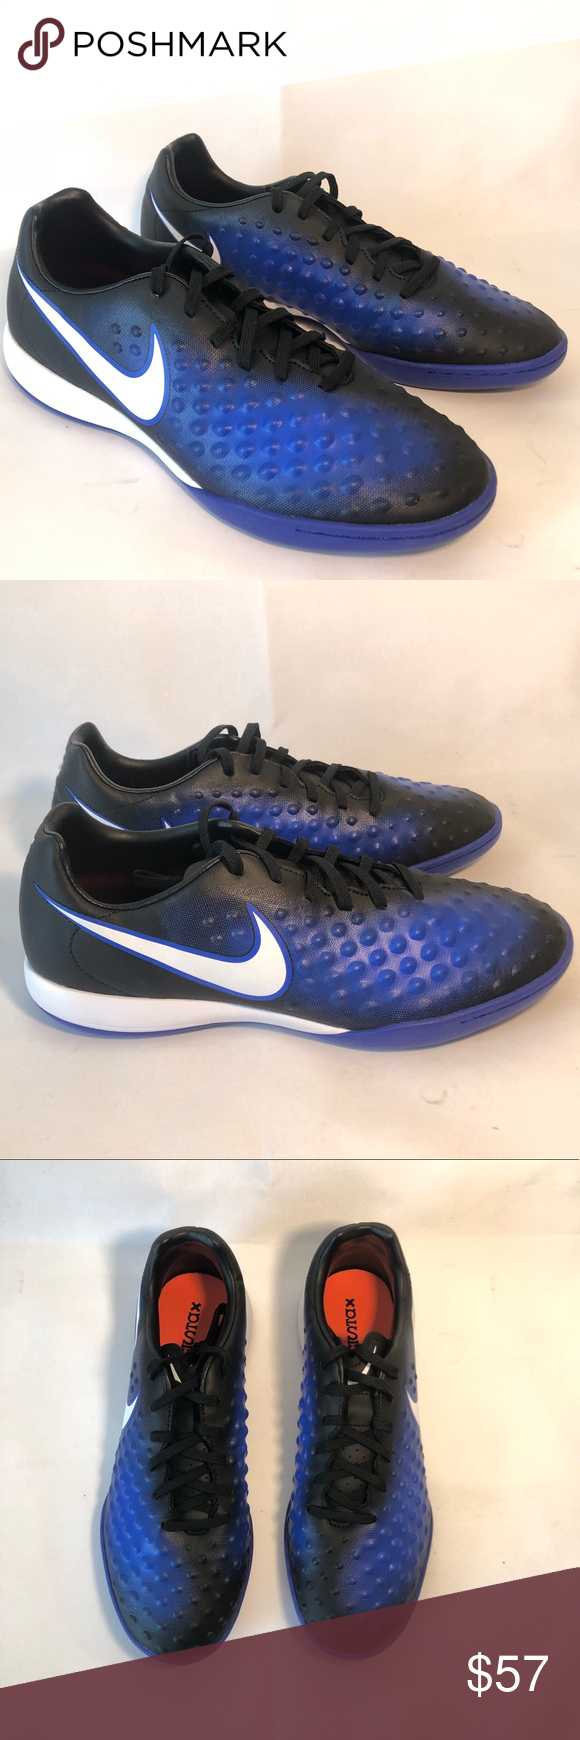 39cd7a8c49a4 Nike Magista X Onda II IC Indoor Soccer Shoes Sz 7 Nike Magista X Onda II  IC Indoor Soccer Shoes Size 7 Black Blue New 844413-015 Ships next business  day!